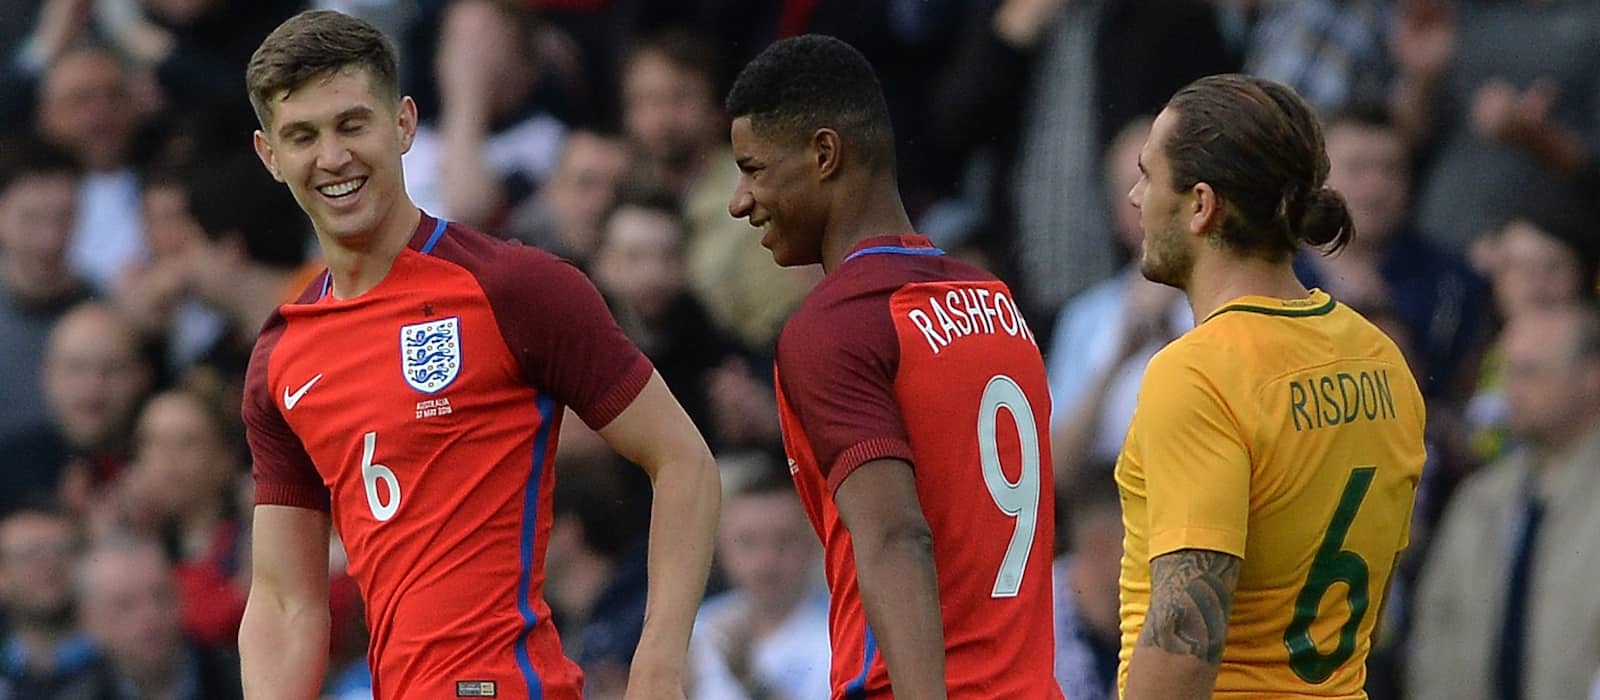 Paul Ince: Marcus Rashford could emulate Michael Owen at Euro 2016